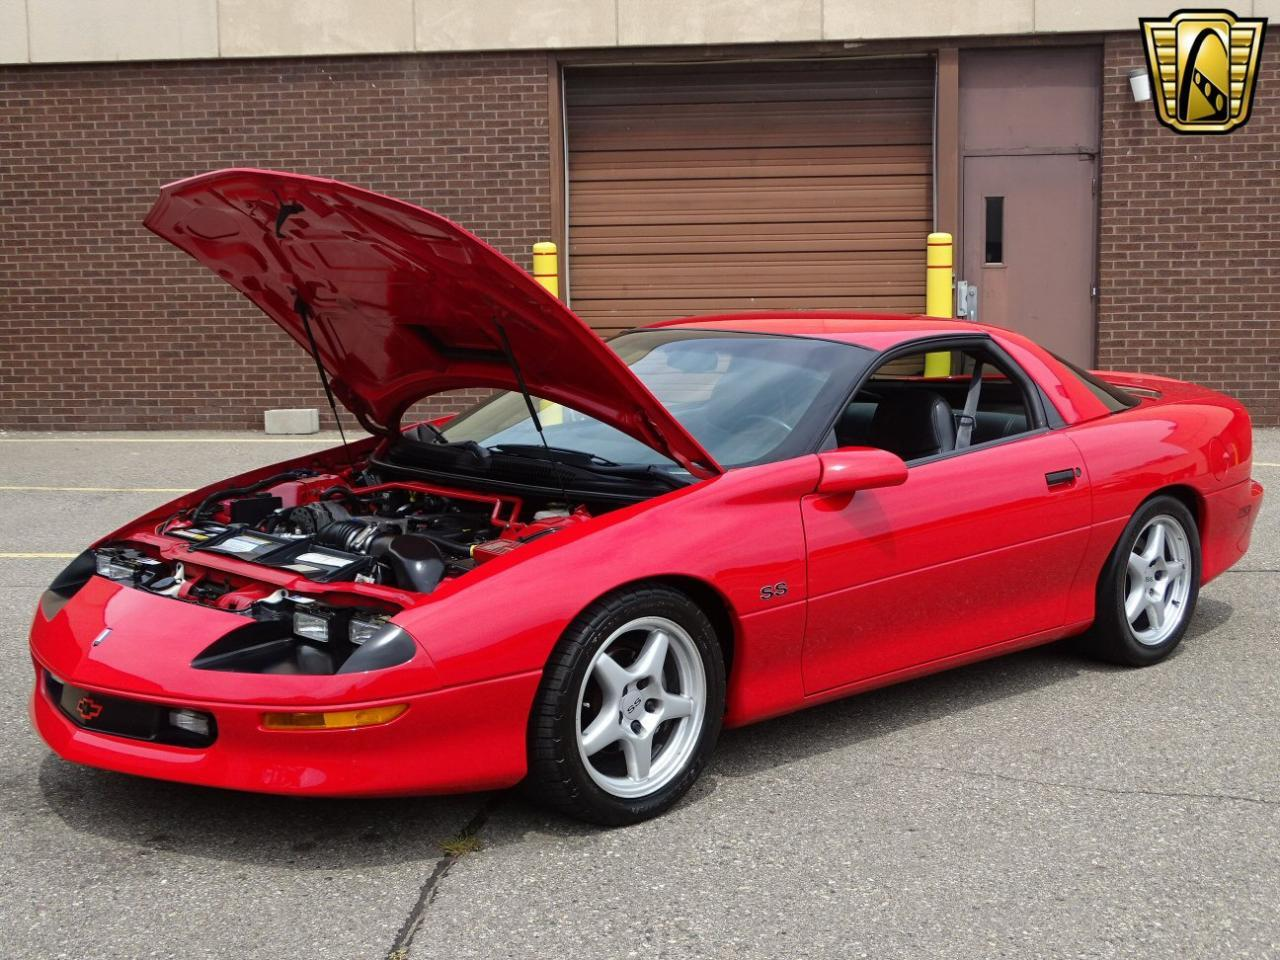 Large Picture of 1996 Chevrolet Camaro located in Dearborn Michigan - $13,595.00 Offered by Gateway Classic Cars - Detroit - LDUP